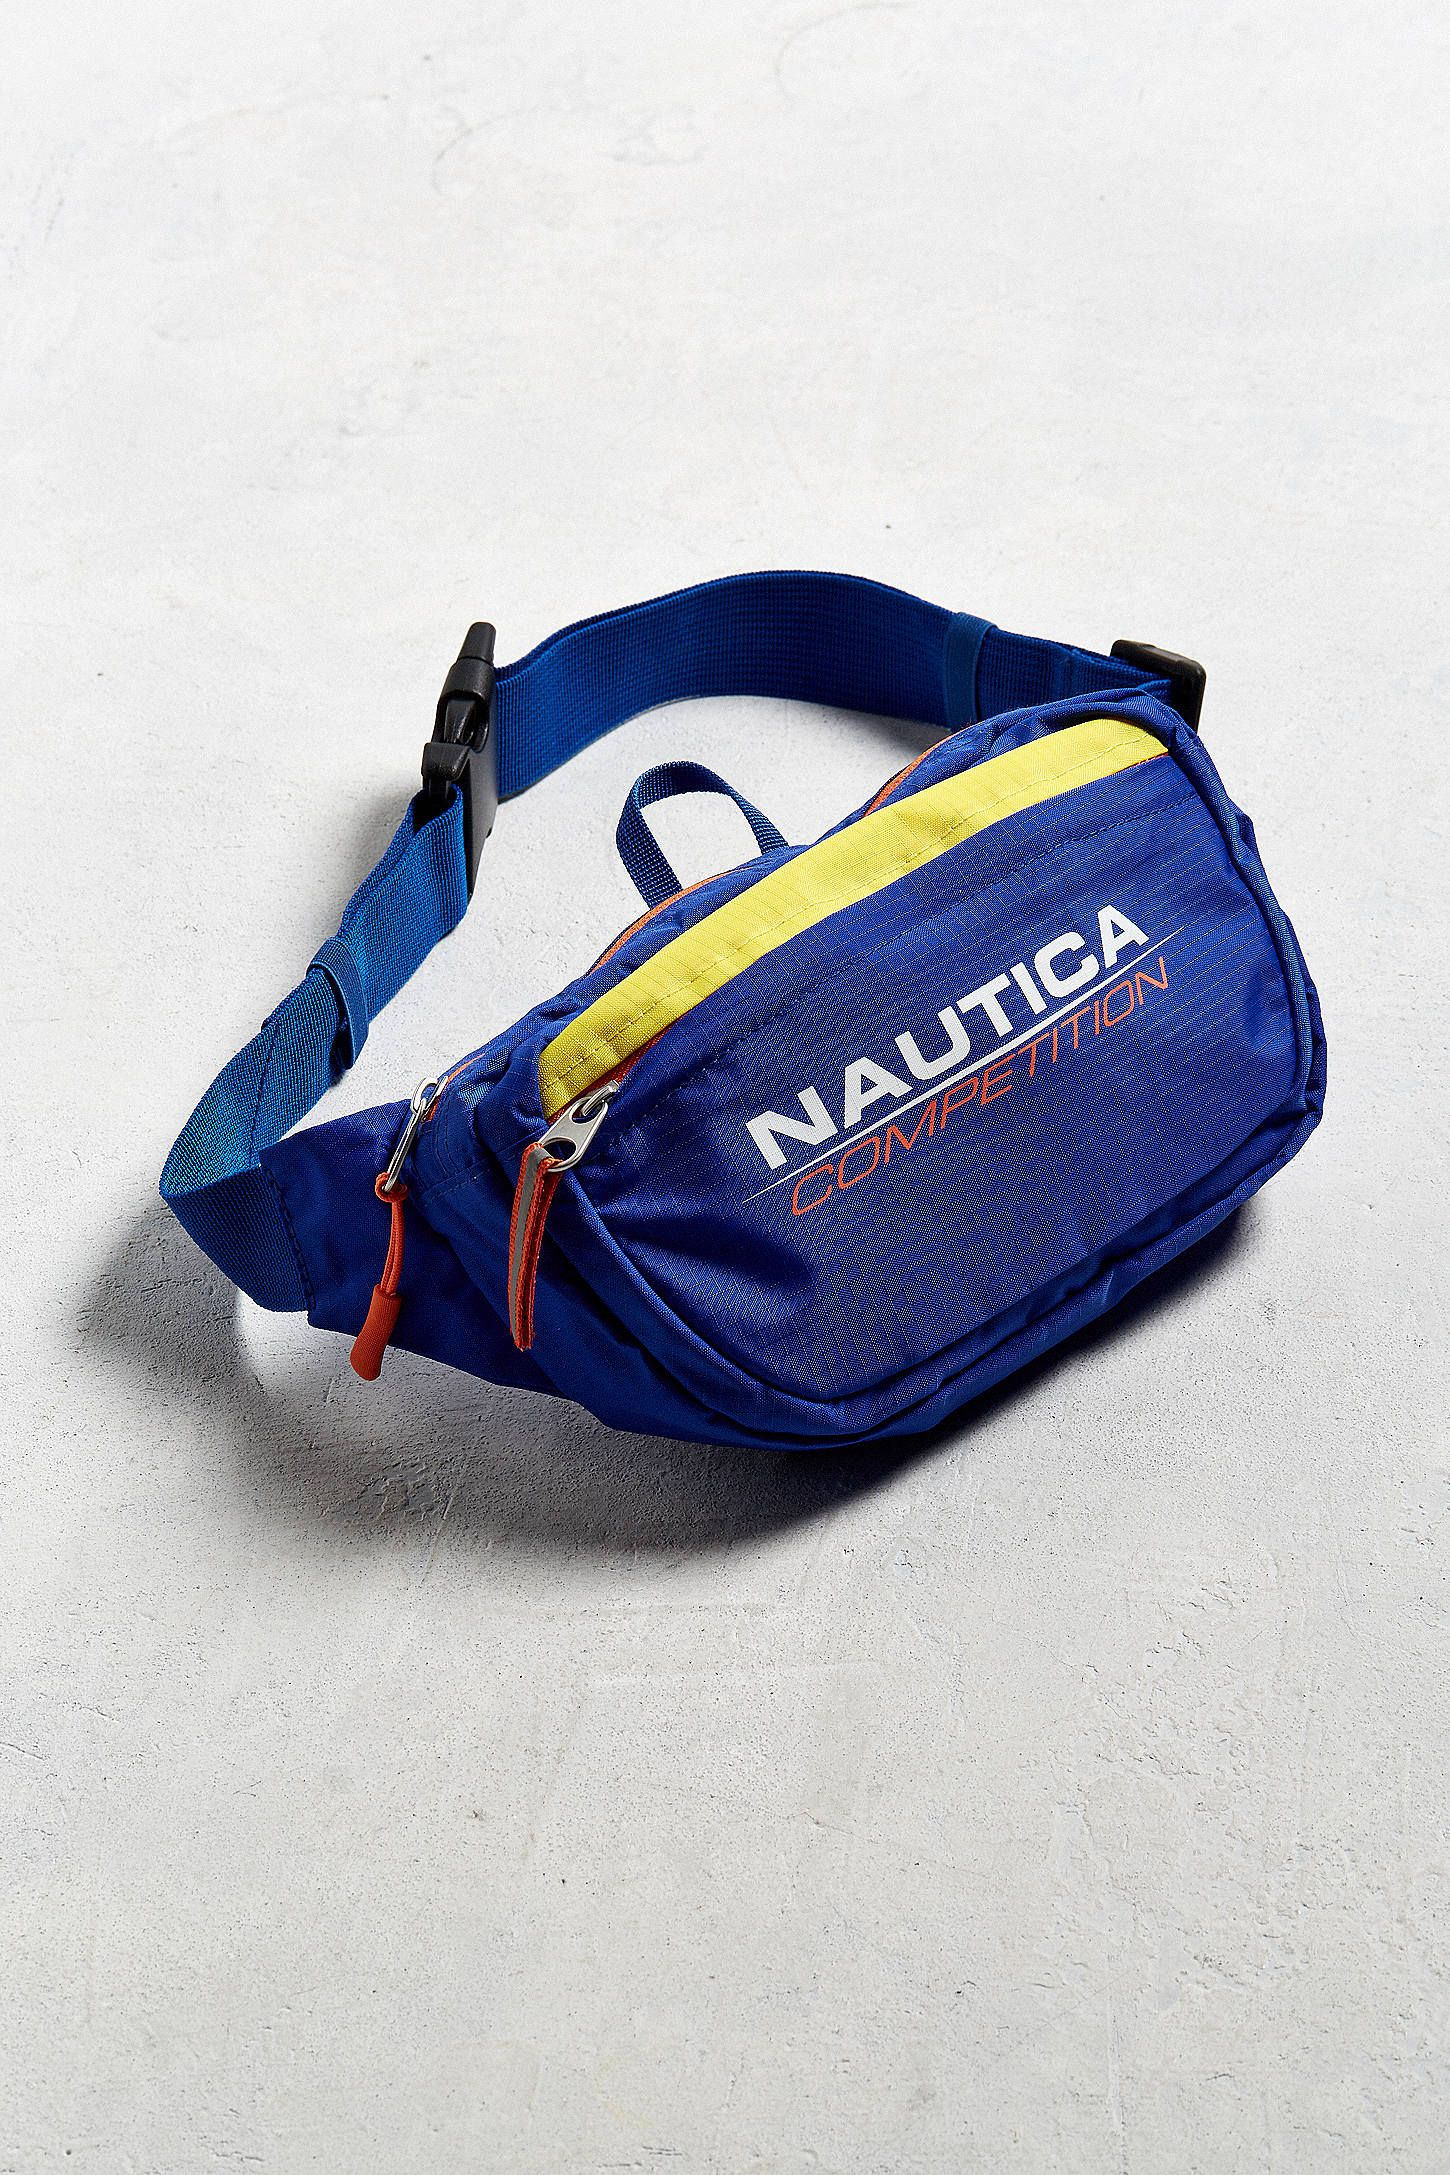 a5568841e52f Shop Nautica Competition For UO Sling Bag at Urban Outfitters today. We  carry all the latest styles